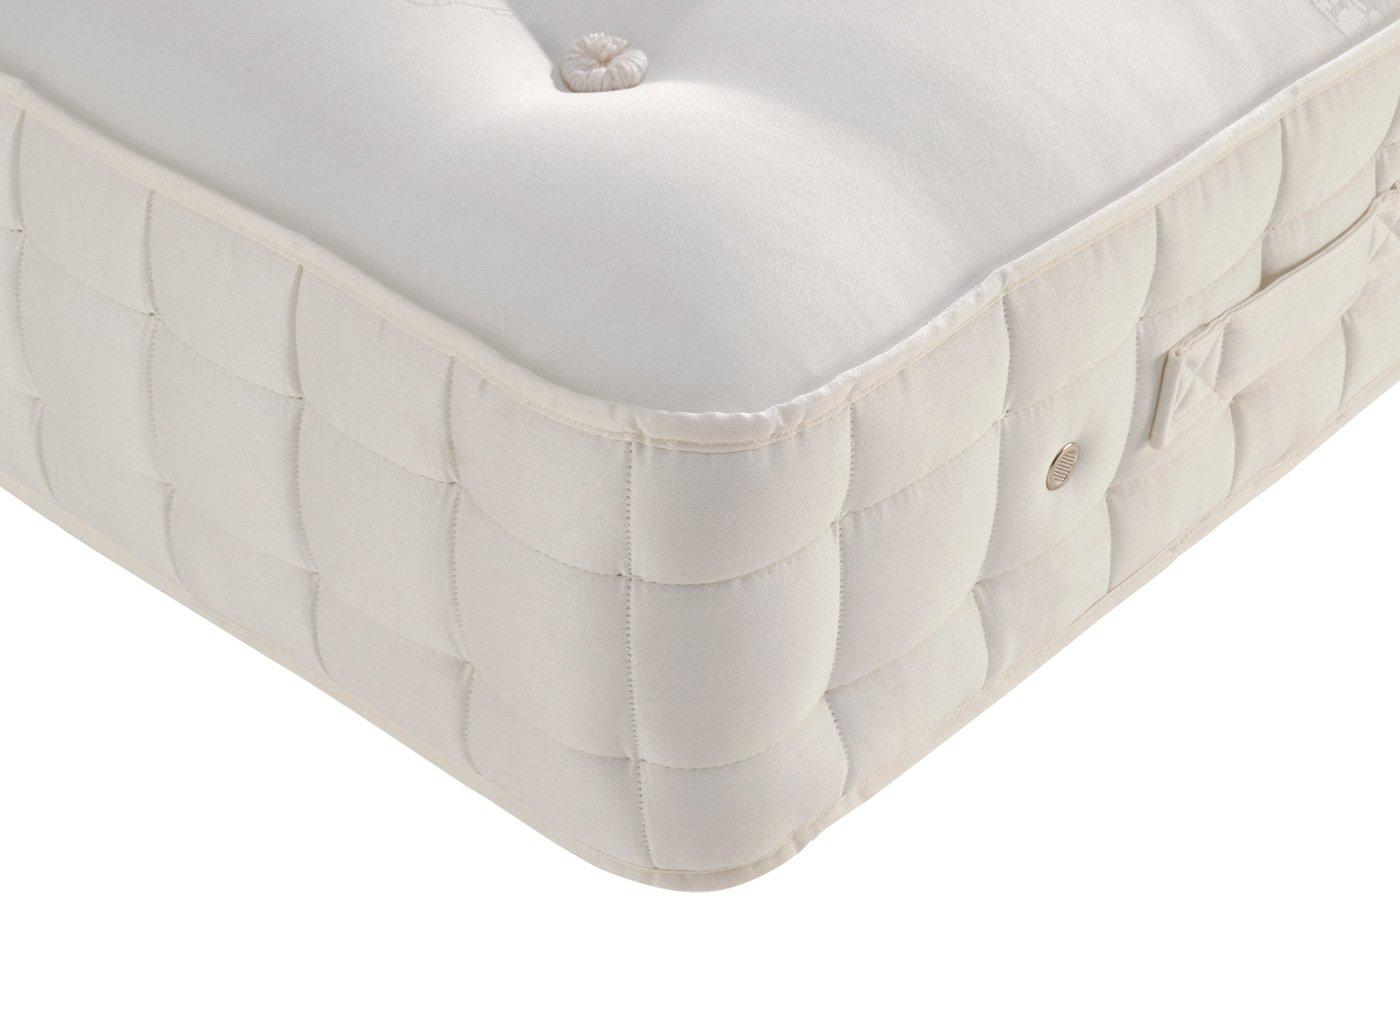 hypnos-swinton-pocket-sprung-mattress